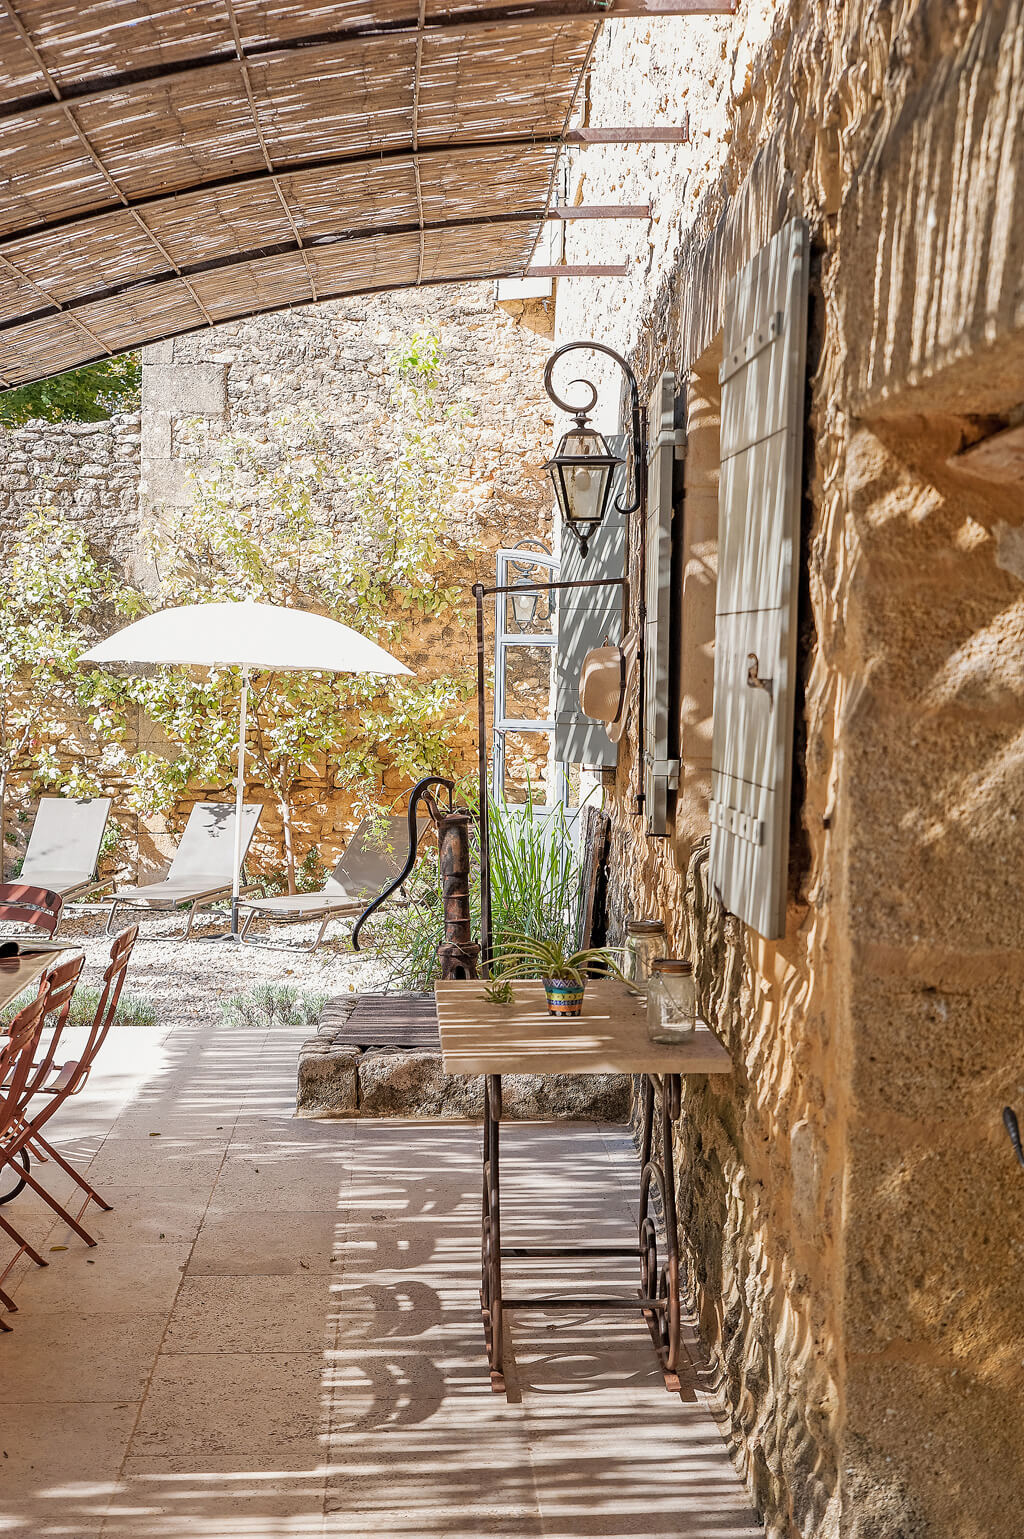 A beautiful French fantasy awaits with rustic elegance in the South of France! House Tour: Inspiring Provence French Farmhouse will delight with images of French country Old World inspiration. #frenchcountry #provence #frenchfarmhouse #housetour #interiordesign #rusticdecor